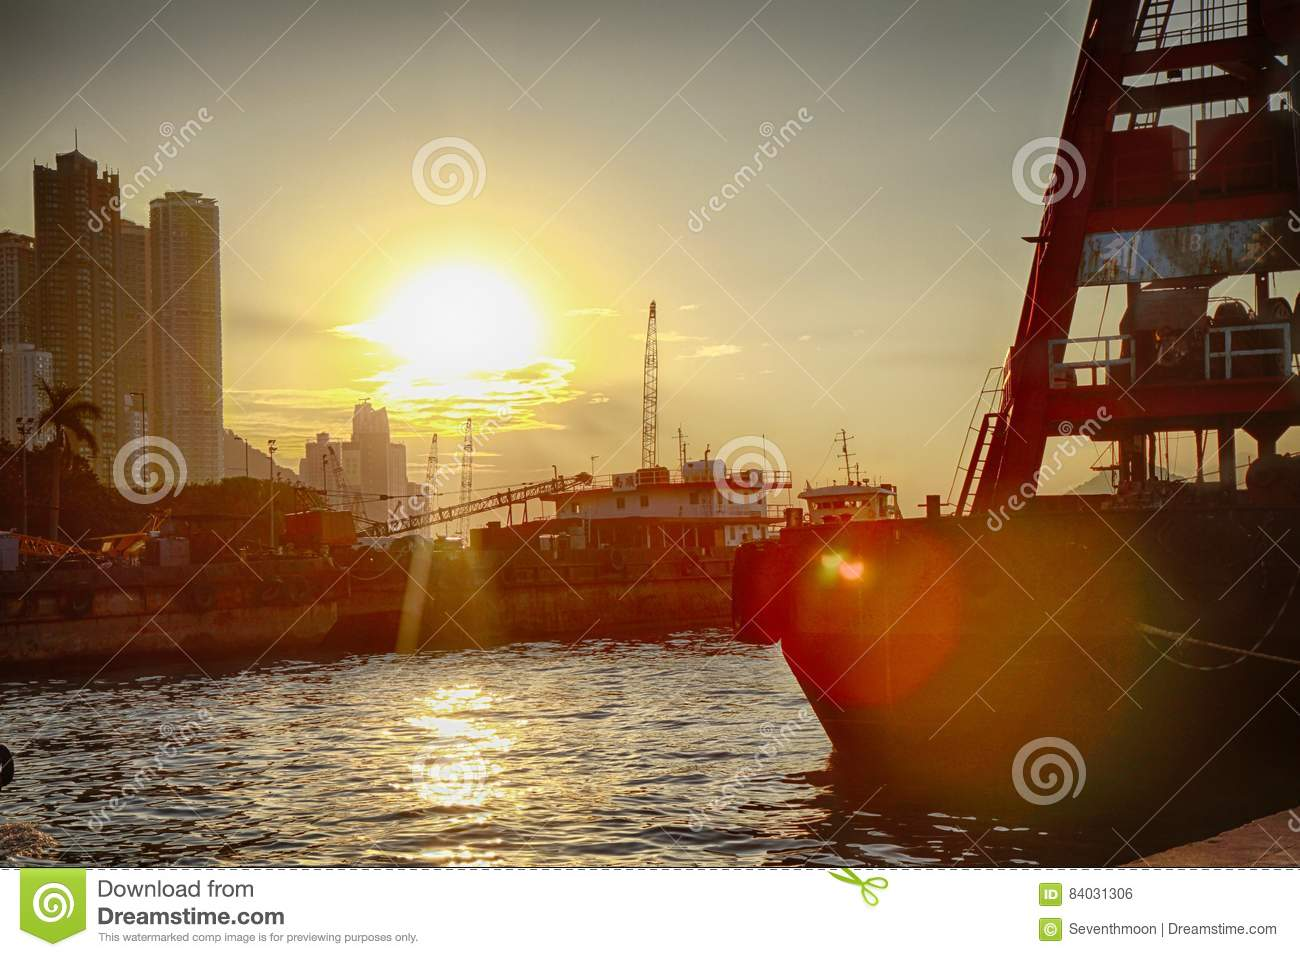 Sunset with sea and ship